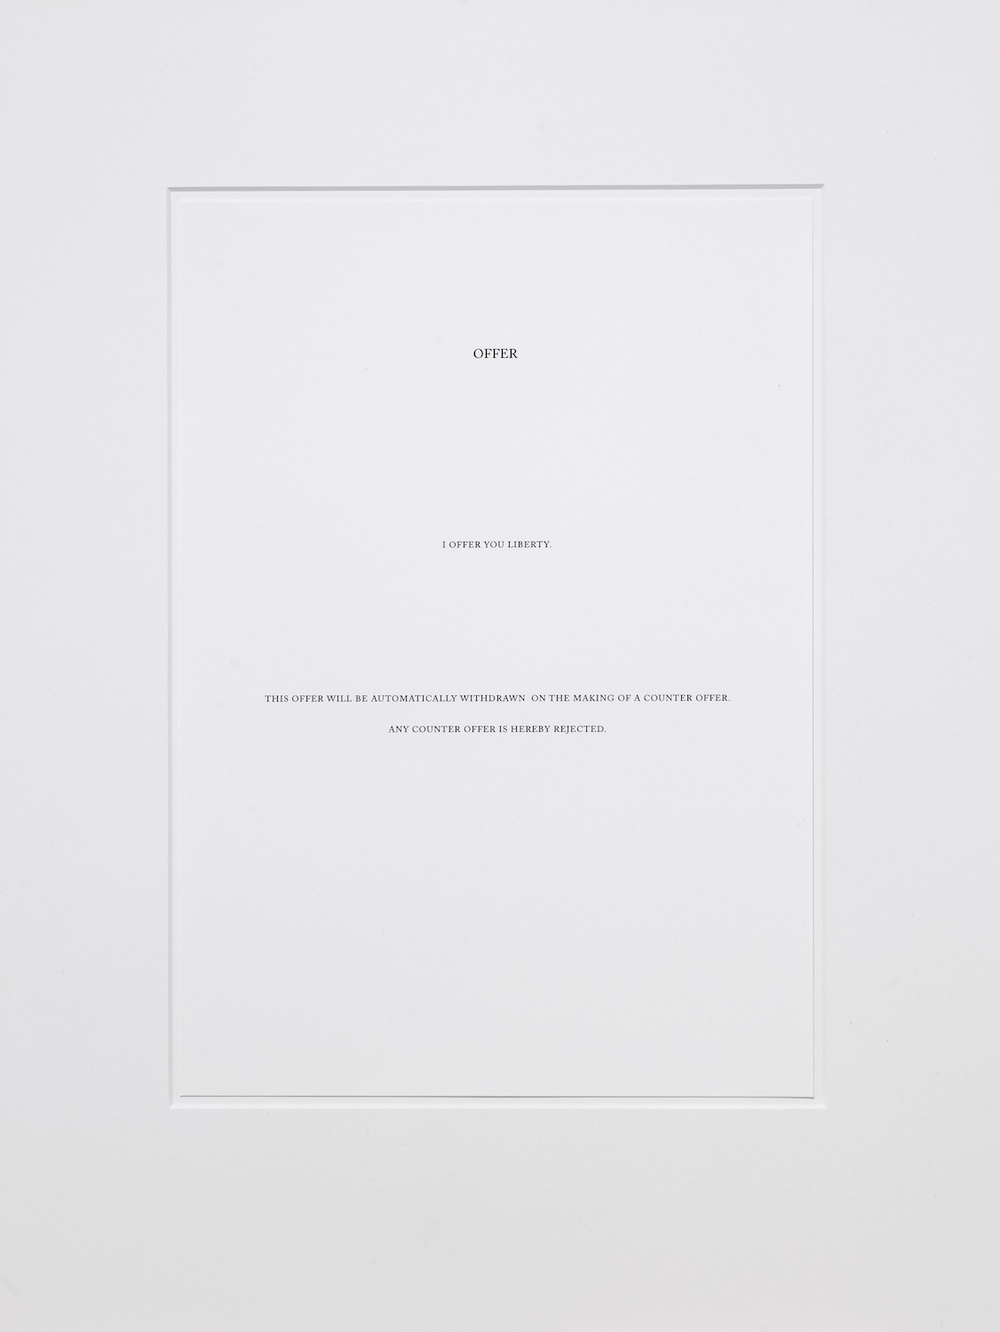 Counter Offer,  Carey Young, 2008, Archival inkjet print, 2 parts, each 21 x 29 cm